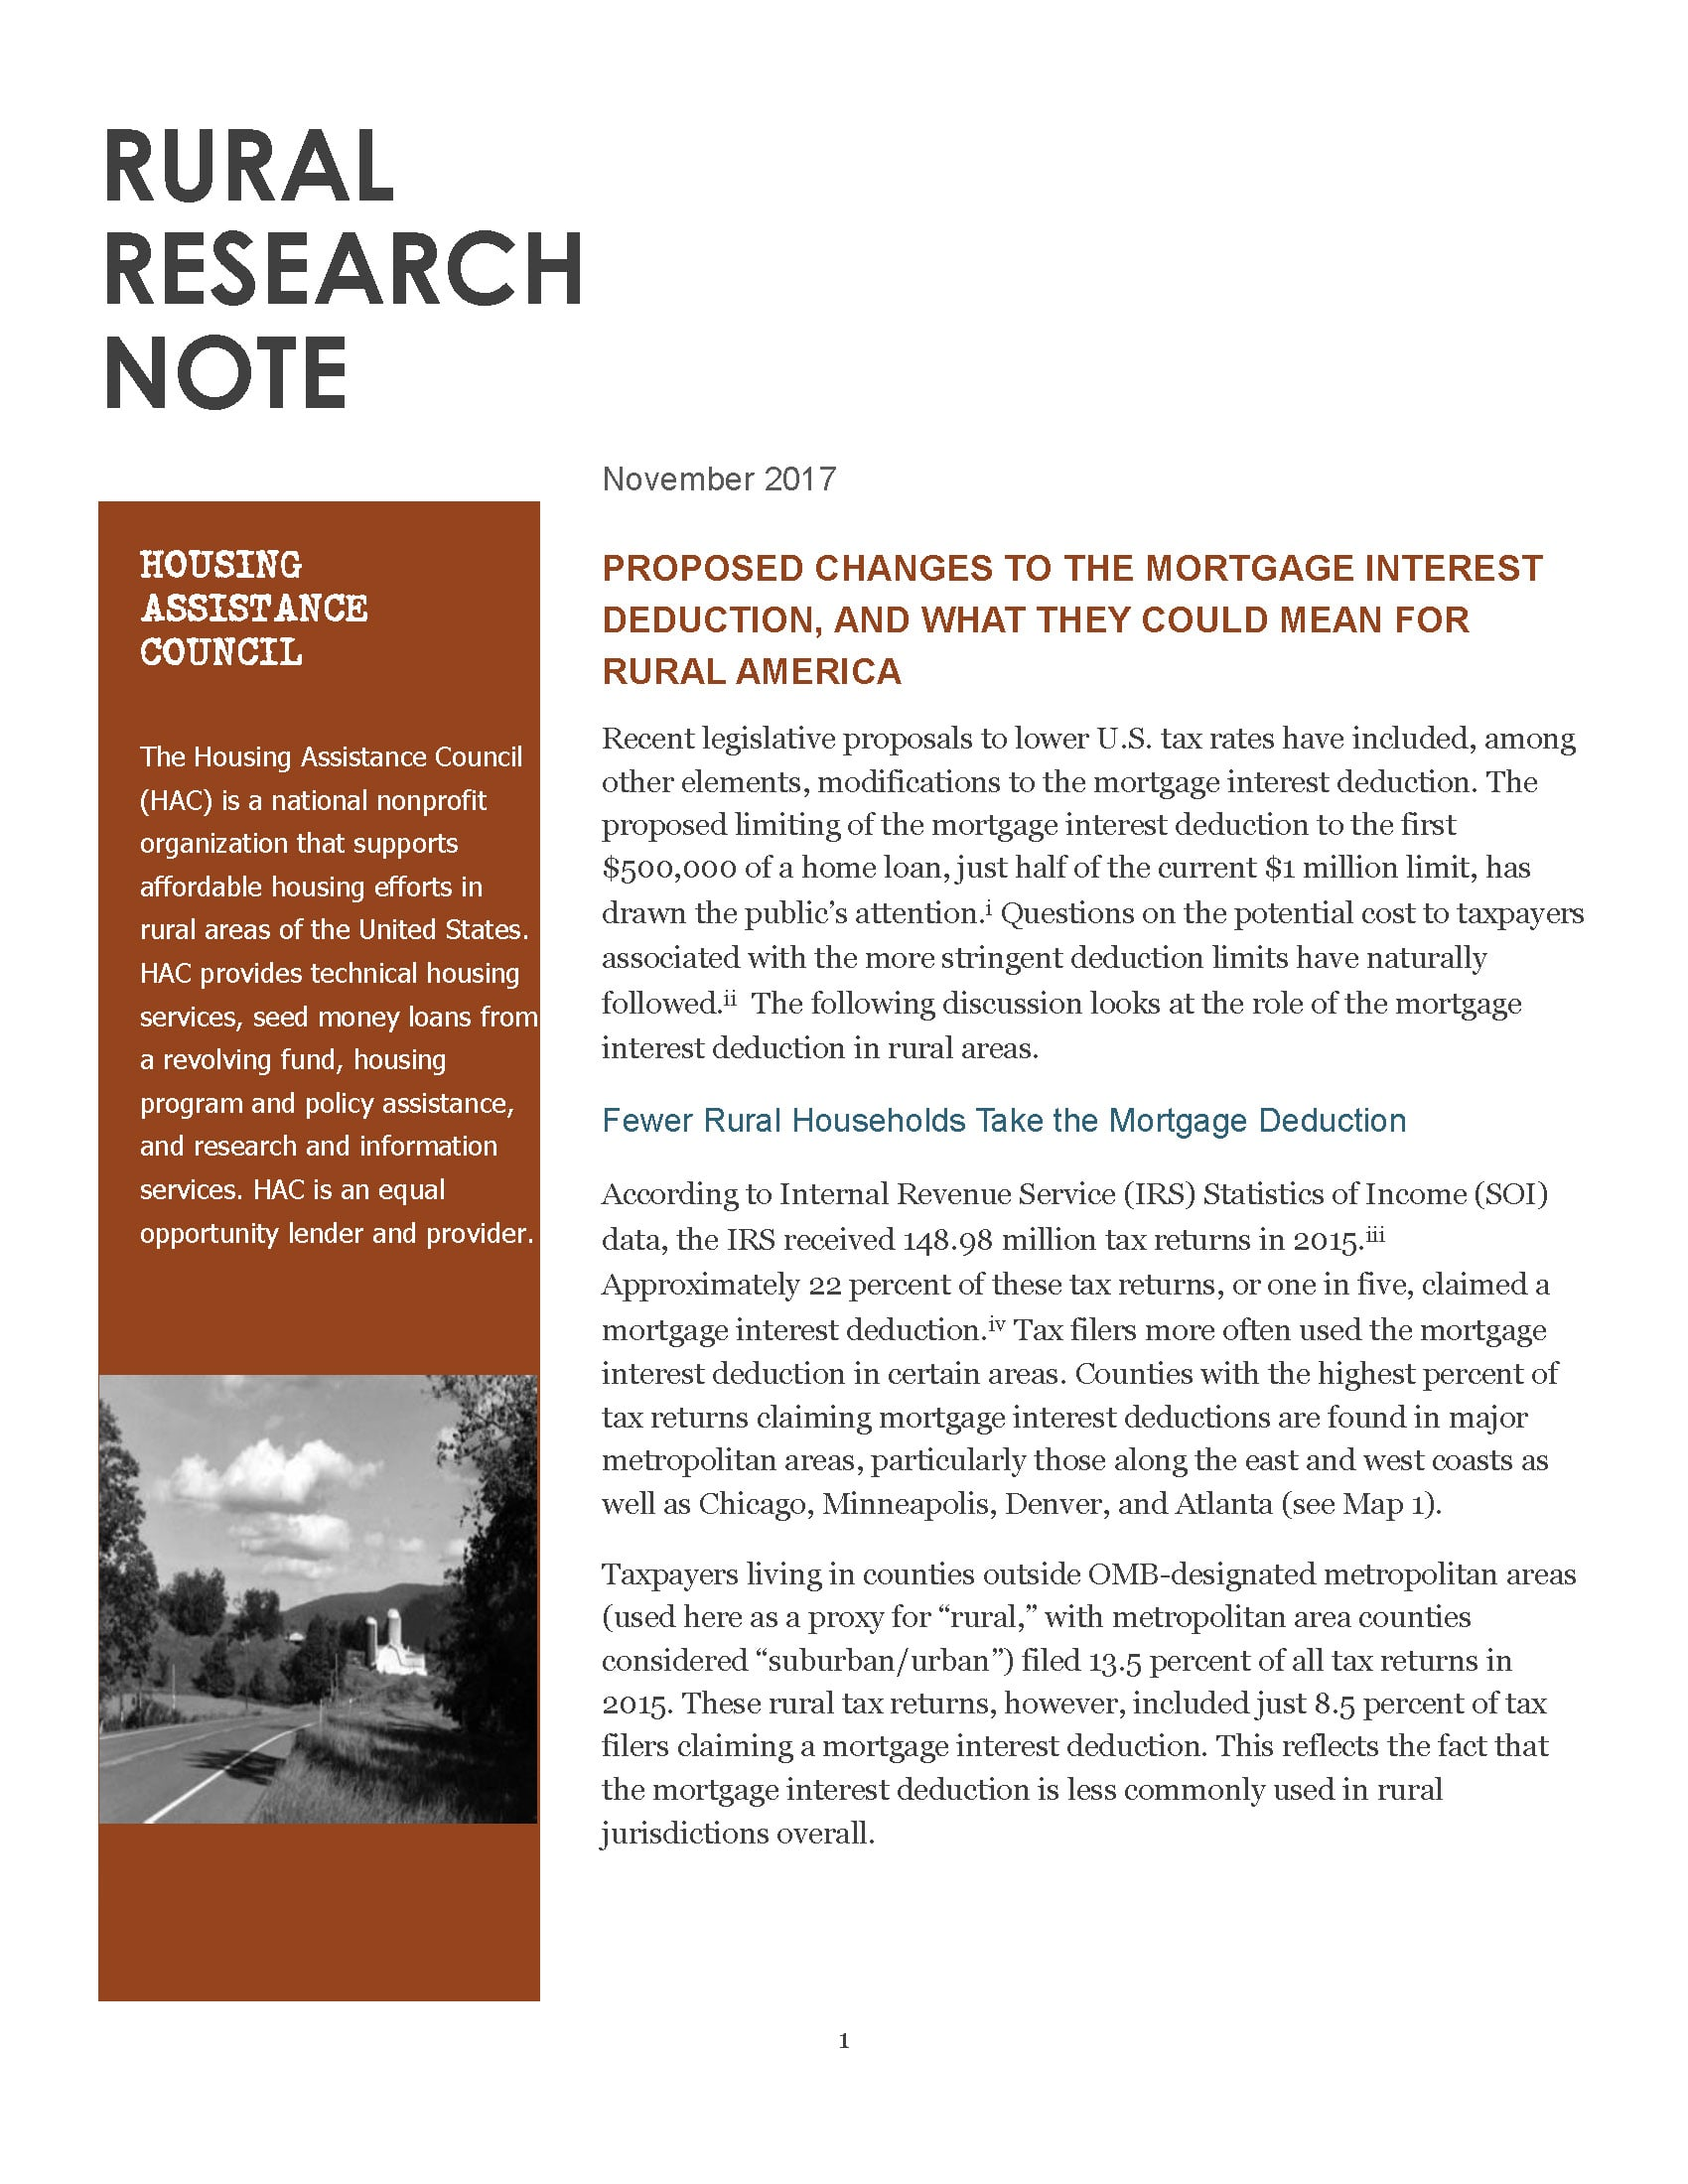 Cover of Rural Research Note Proposed Changes to The Mortgage Interest Deduction, And What They Could Mean for Rural America